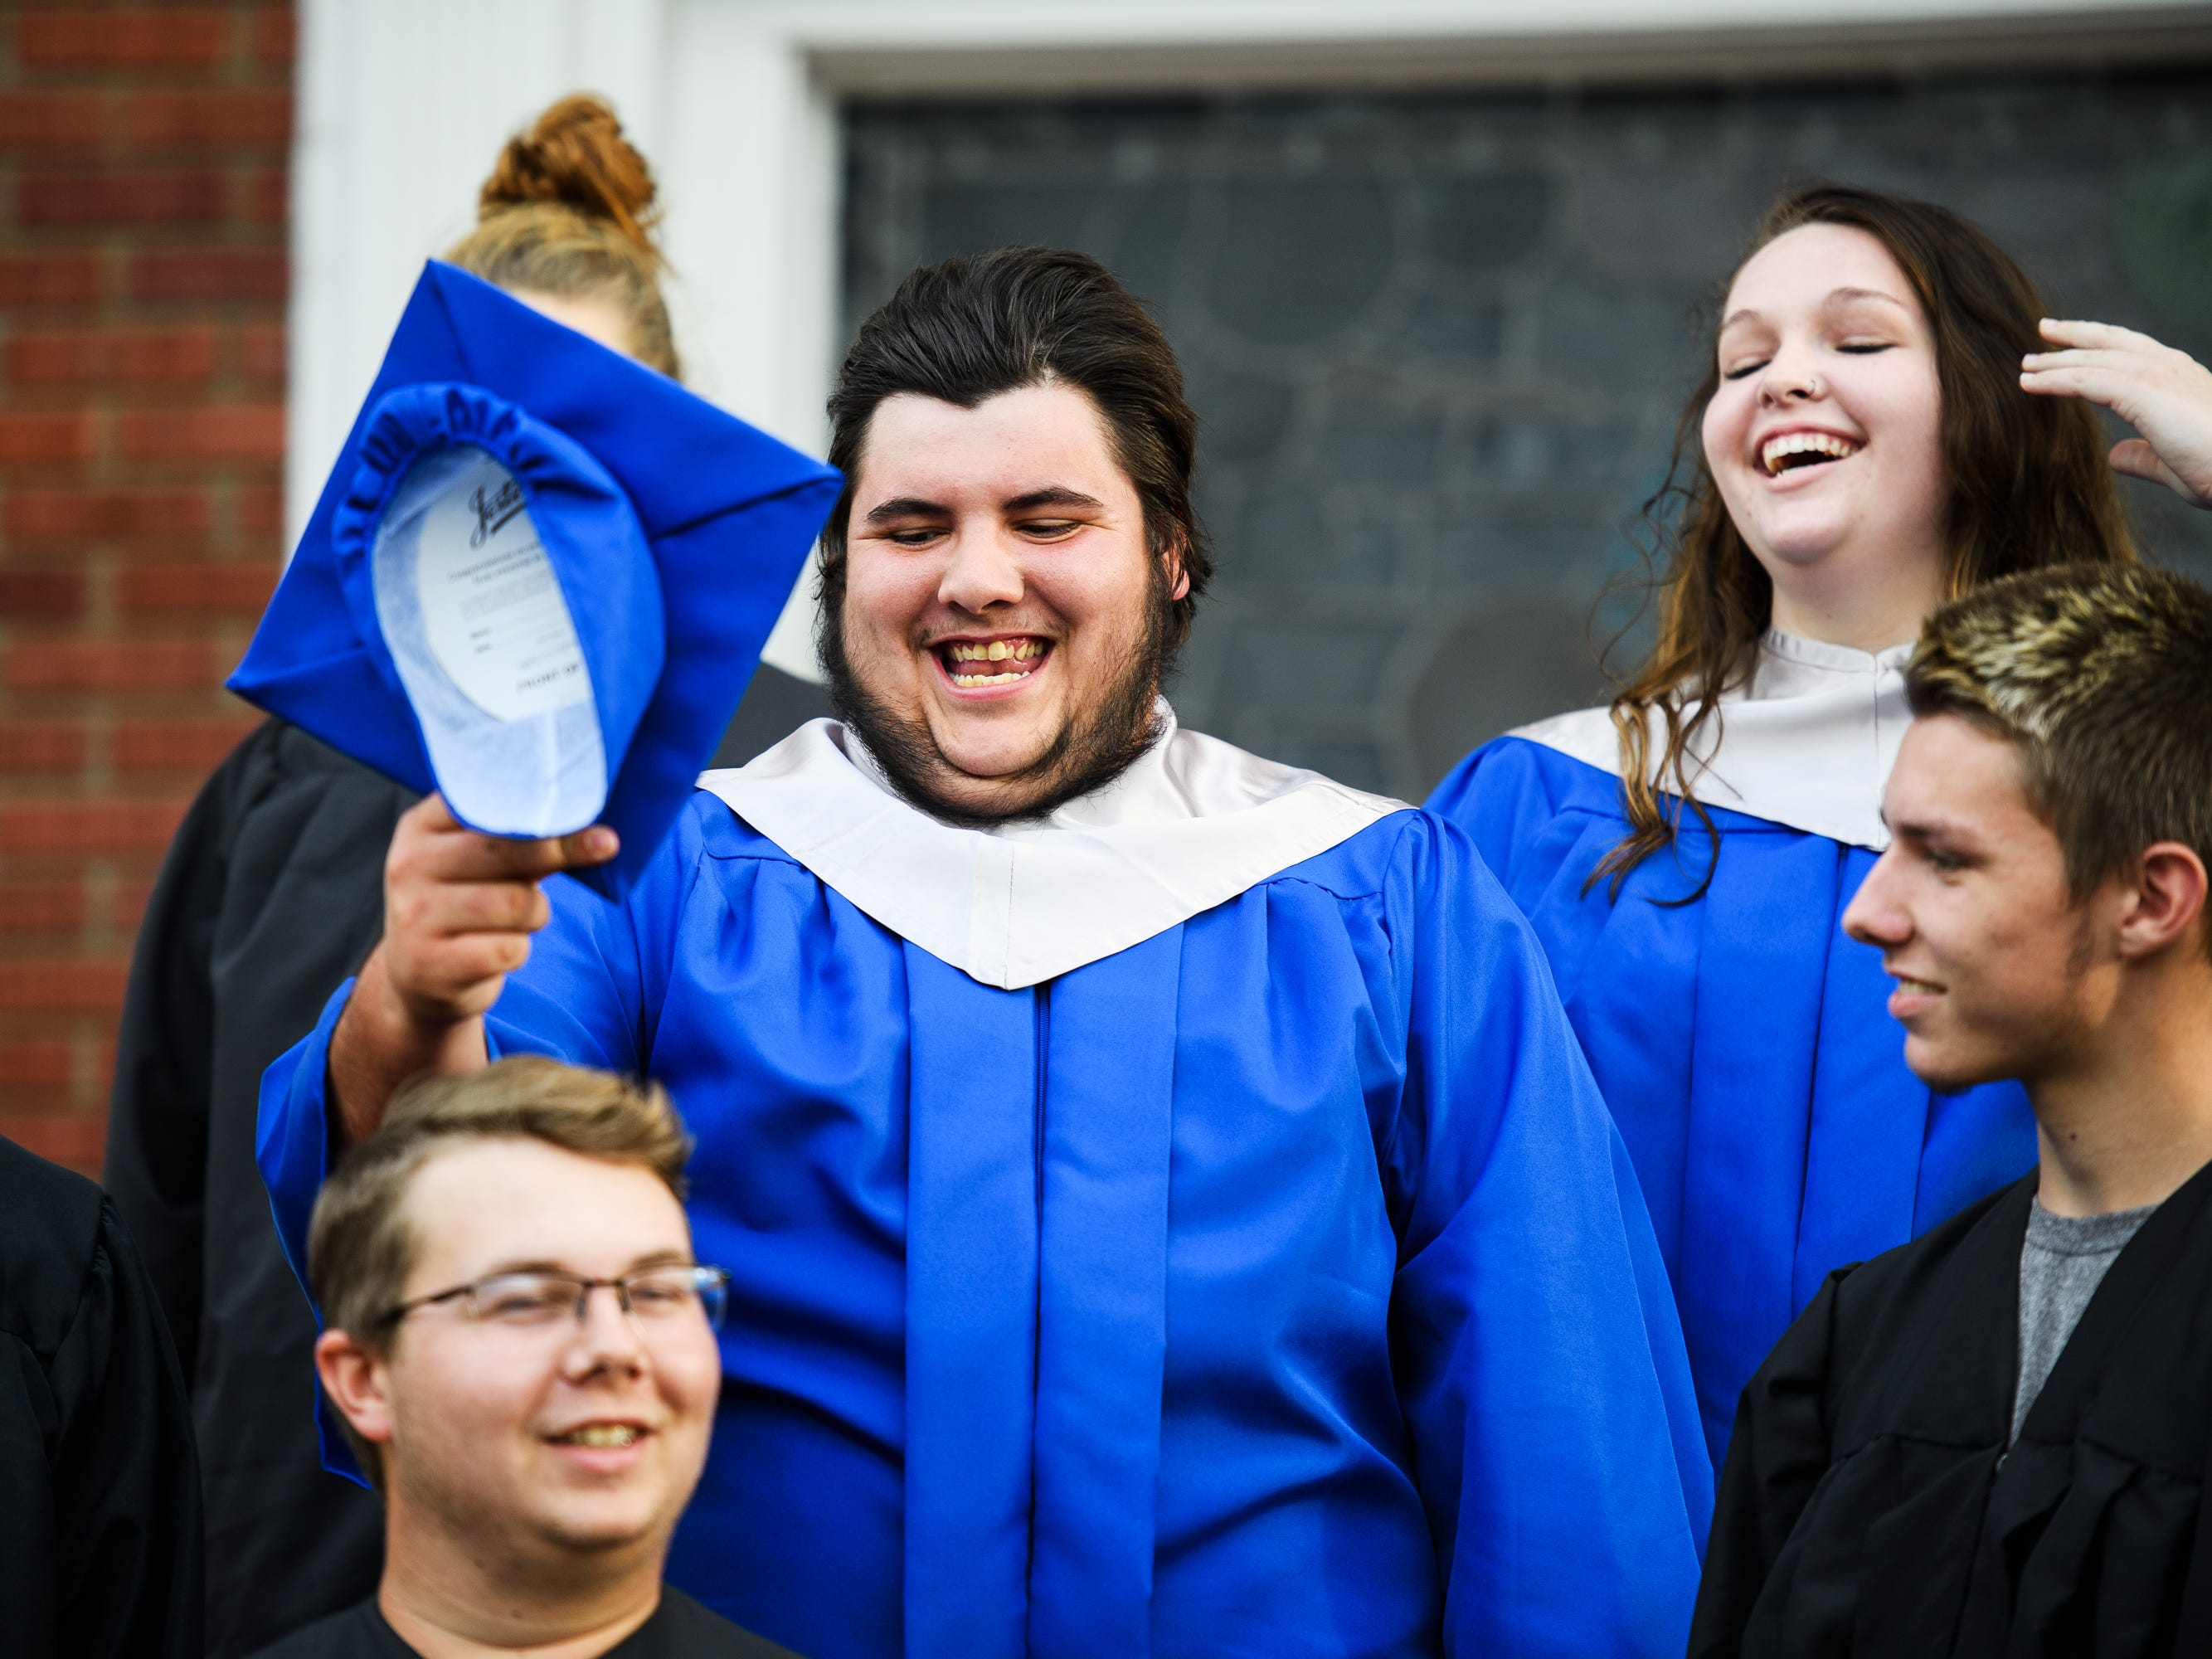 Byrnes High School student Joshua Lee Vanghn laughs with his friends before an early graduation ceremony at Pleasant Grove Baptist Church on Tuesday, Oct. 9, 2018.